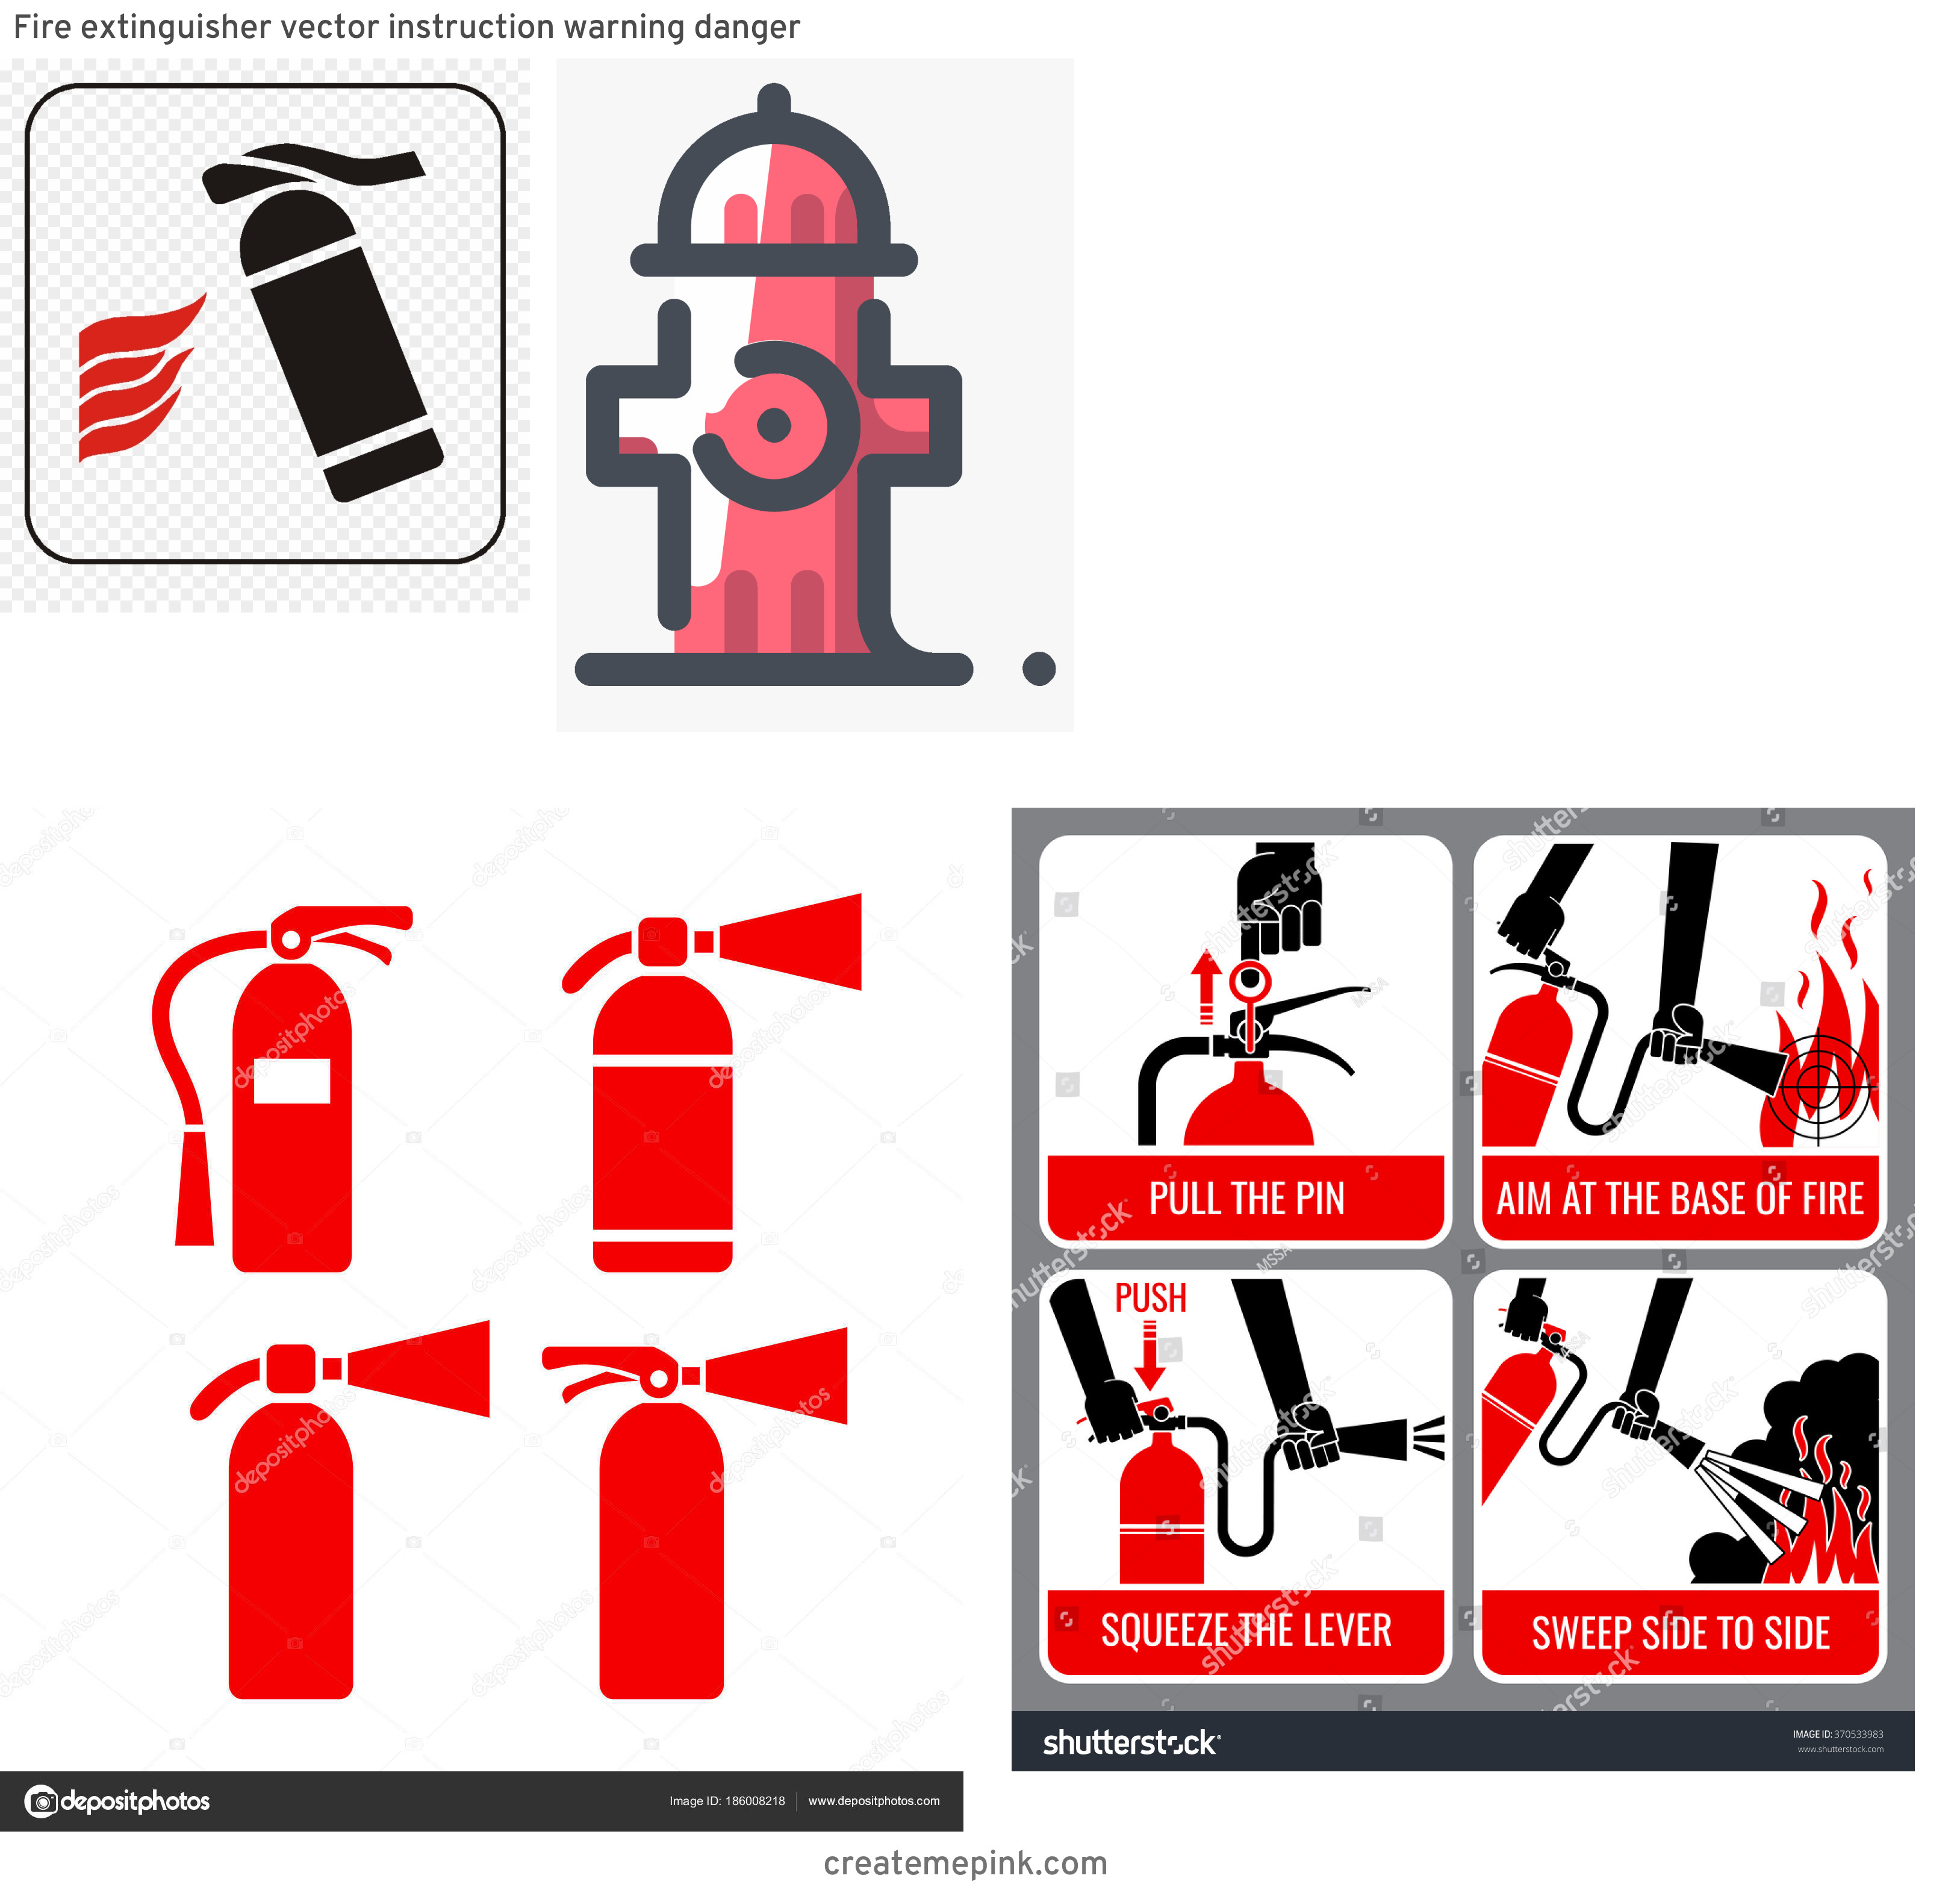 Fire Hydrant Vector Clip Art: Fire Extinguisher Vector Instruction Warning Danger